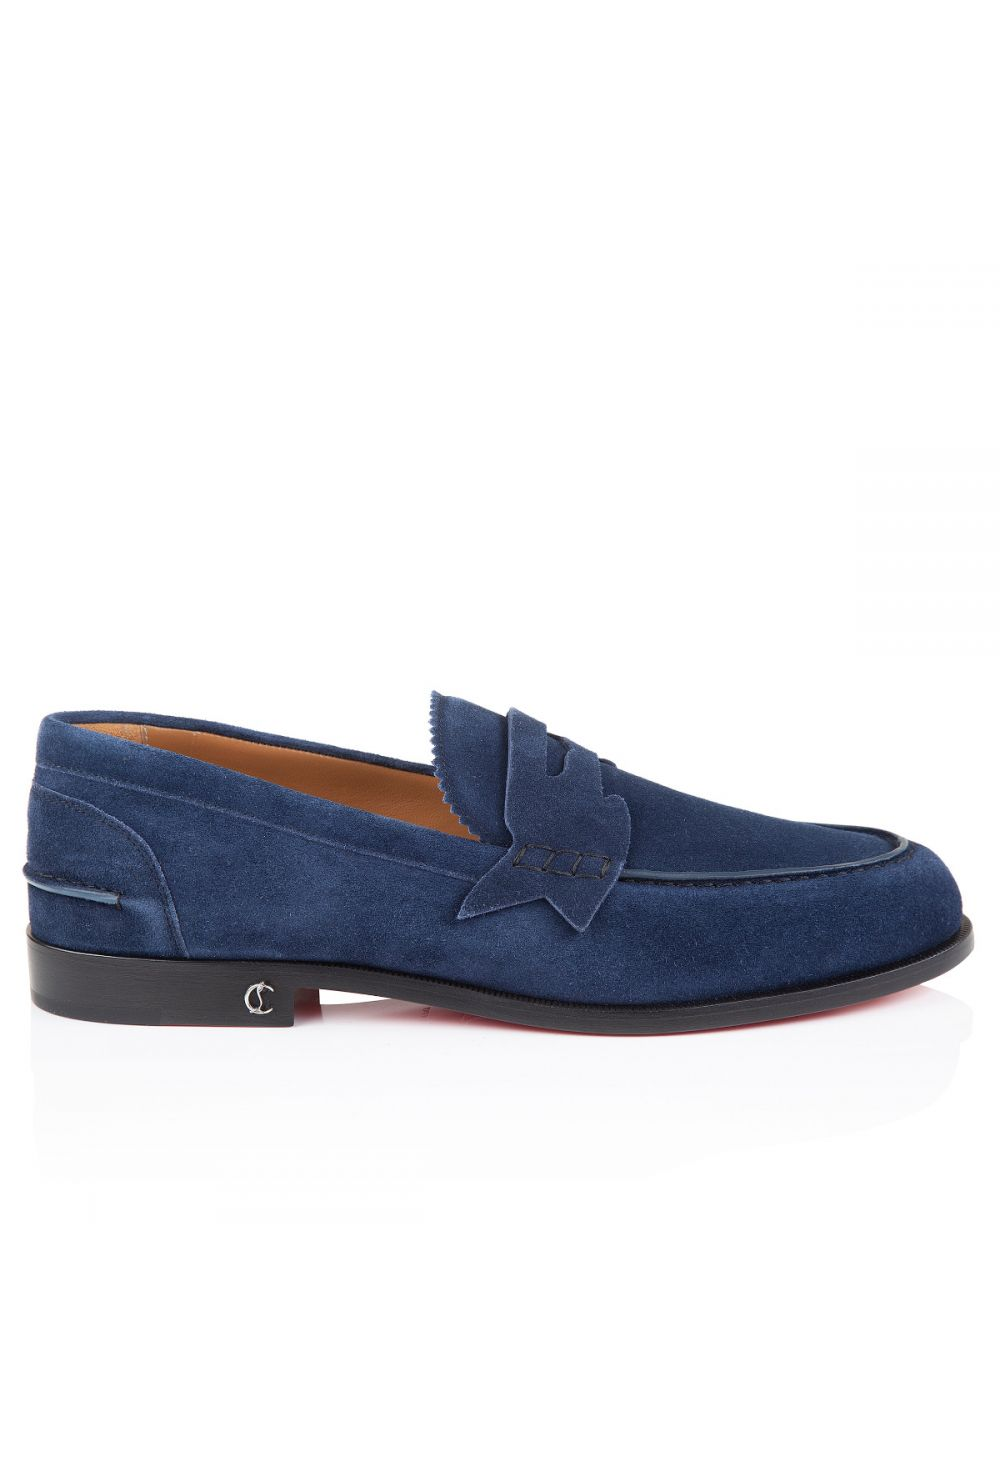 Christian Louboutin No Penny Loafer